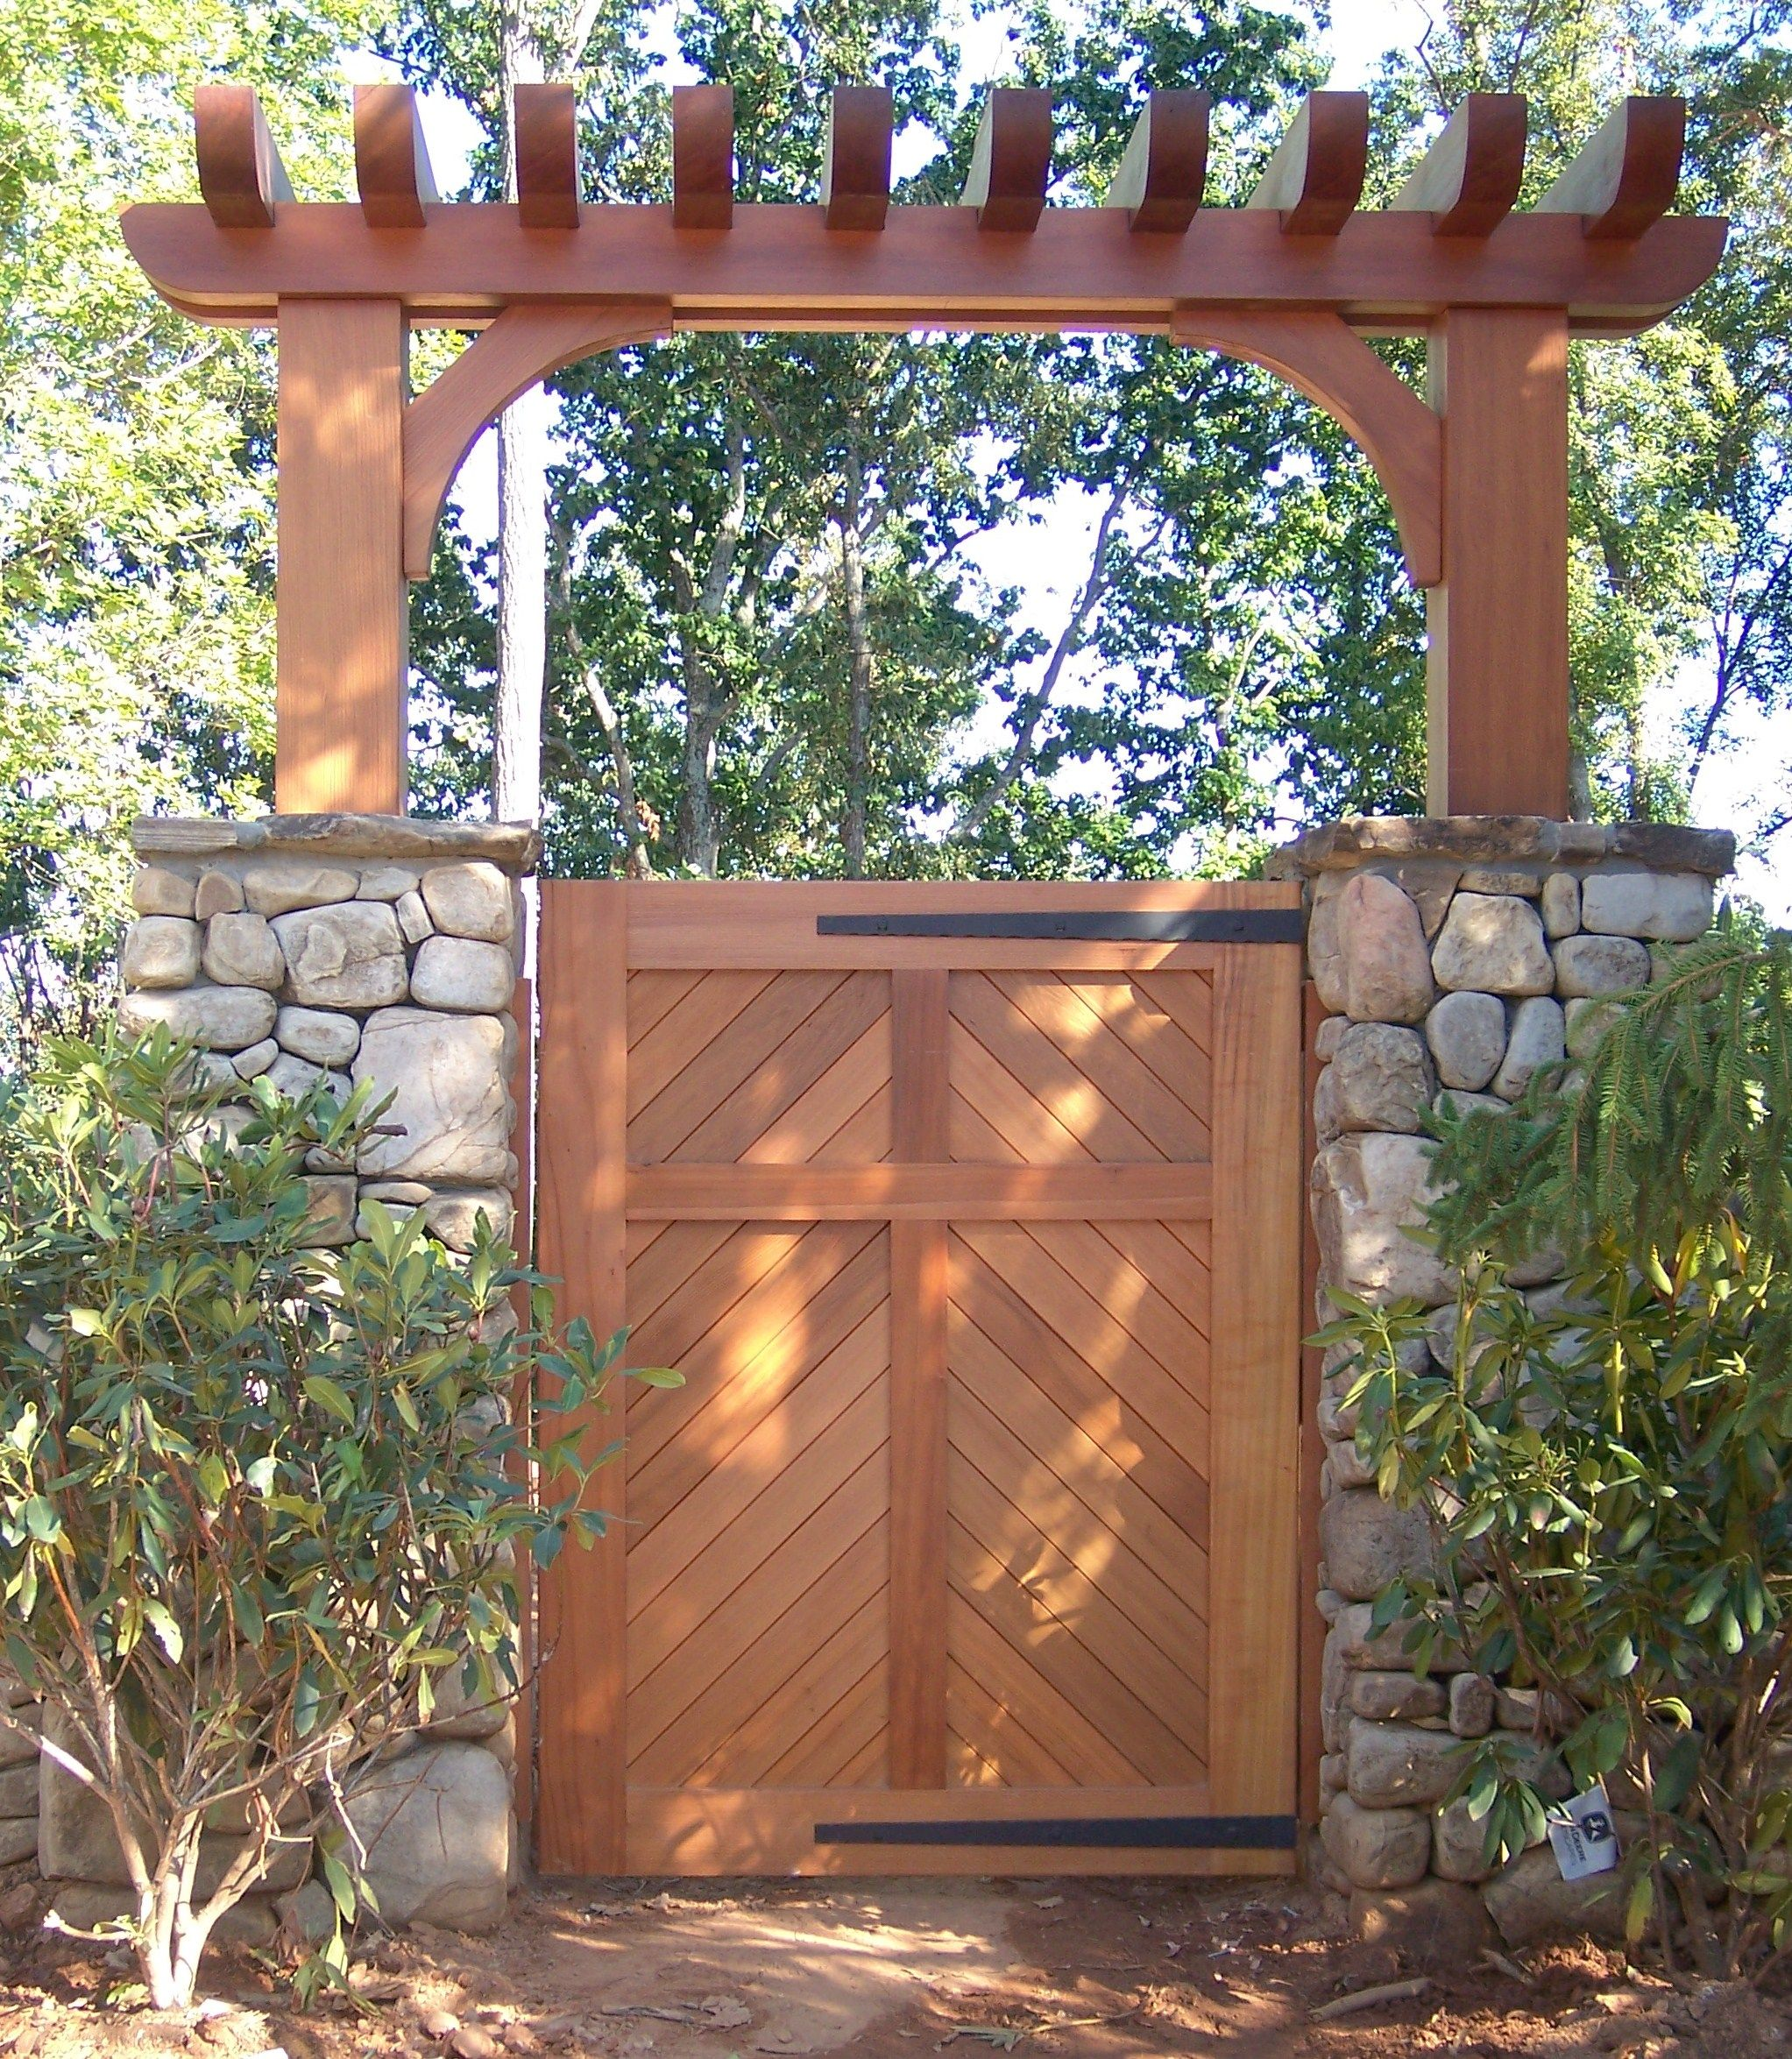 Arbor Over Gate Ideas: Stone With Awesome Gate.